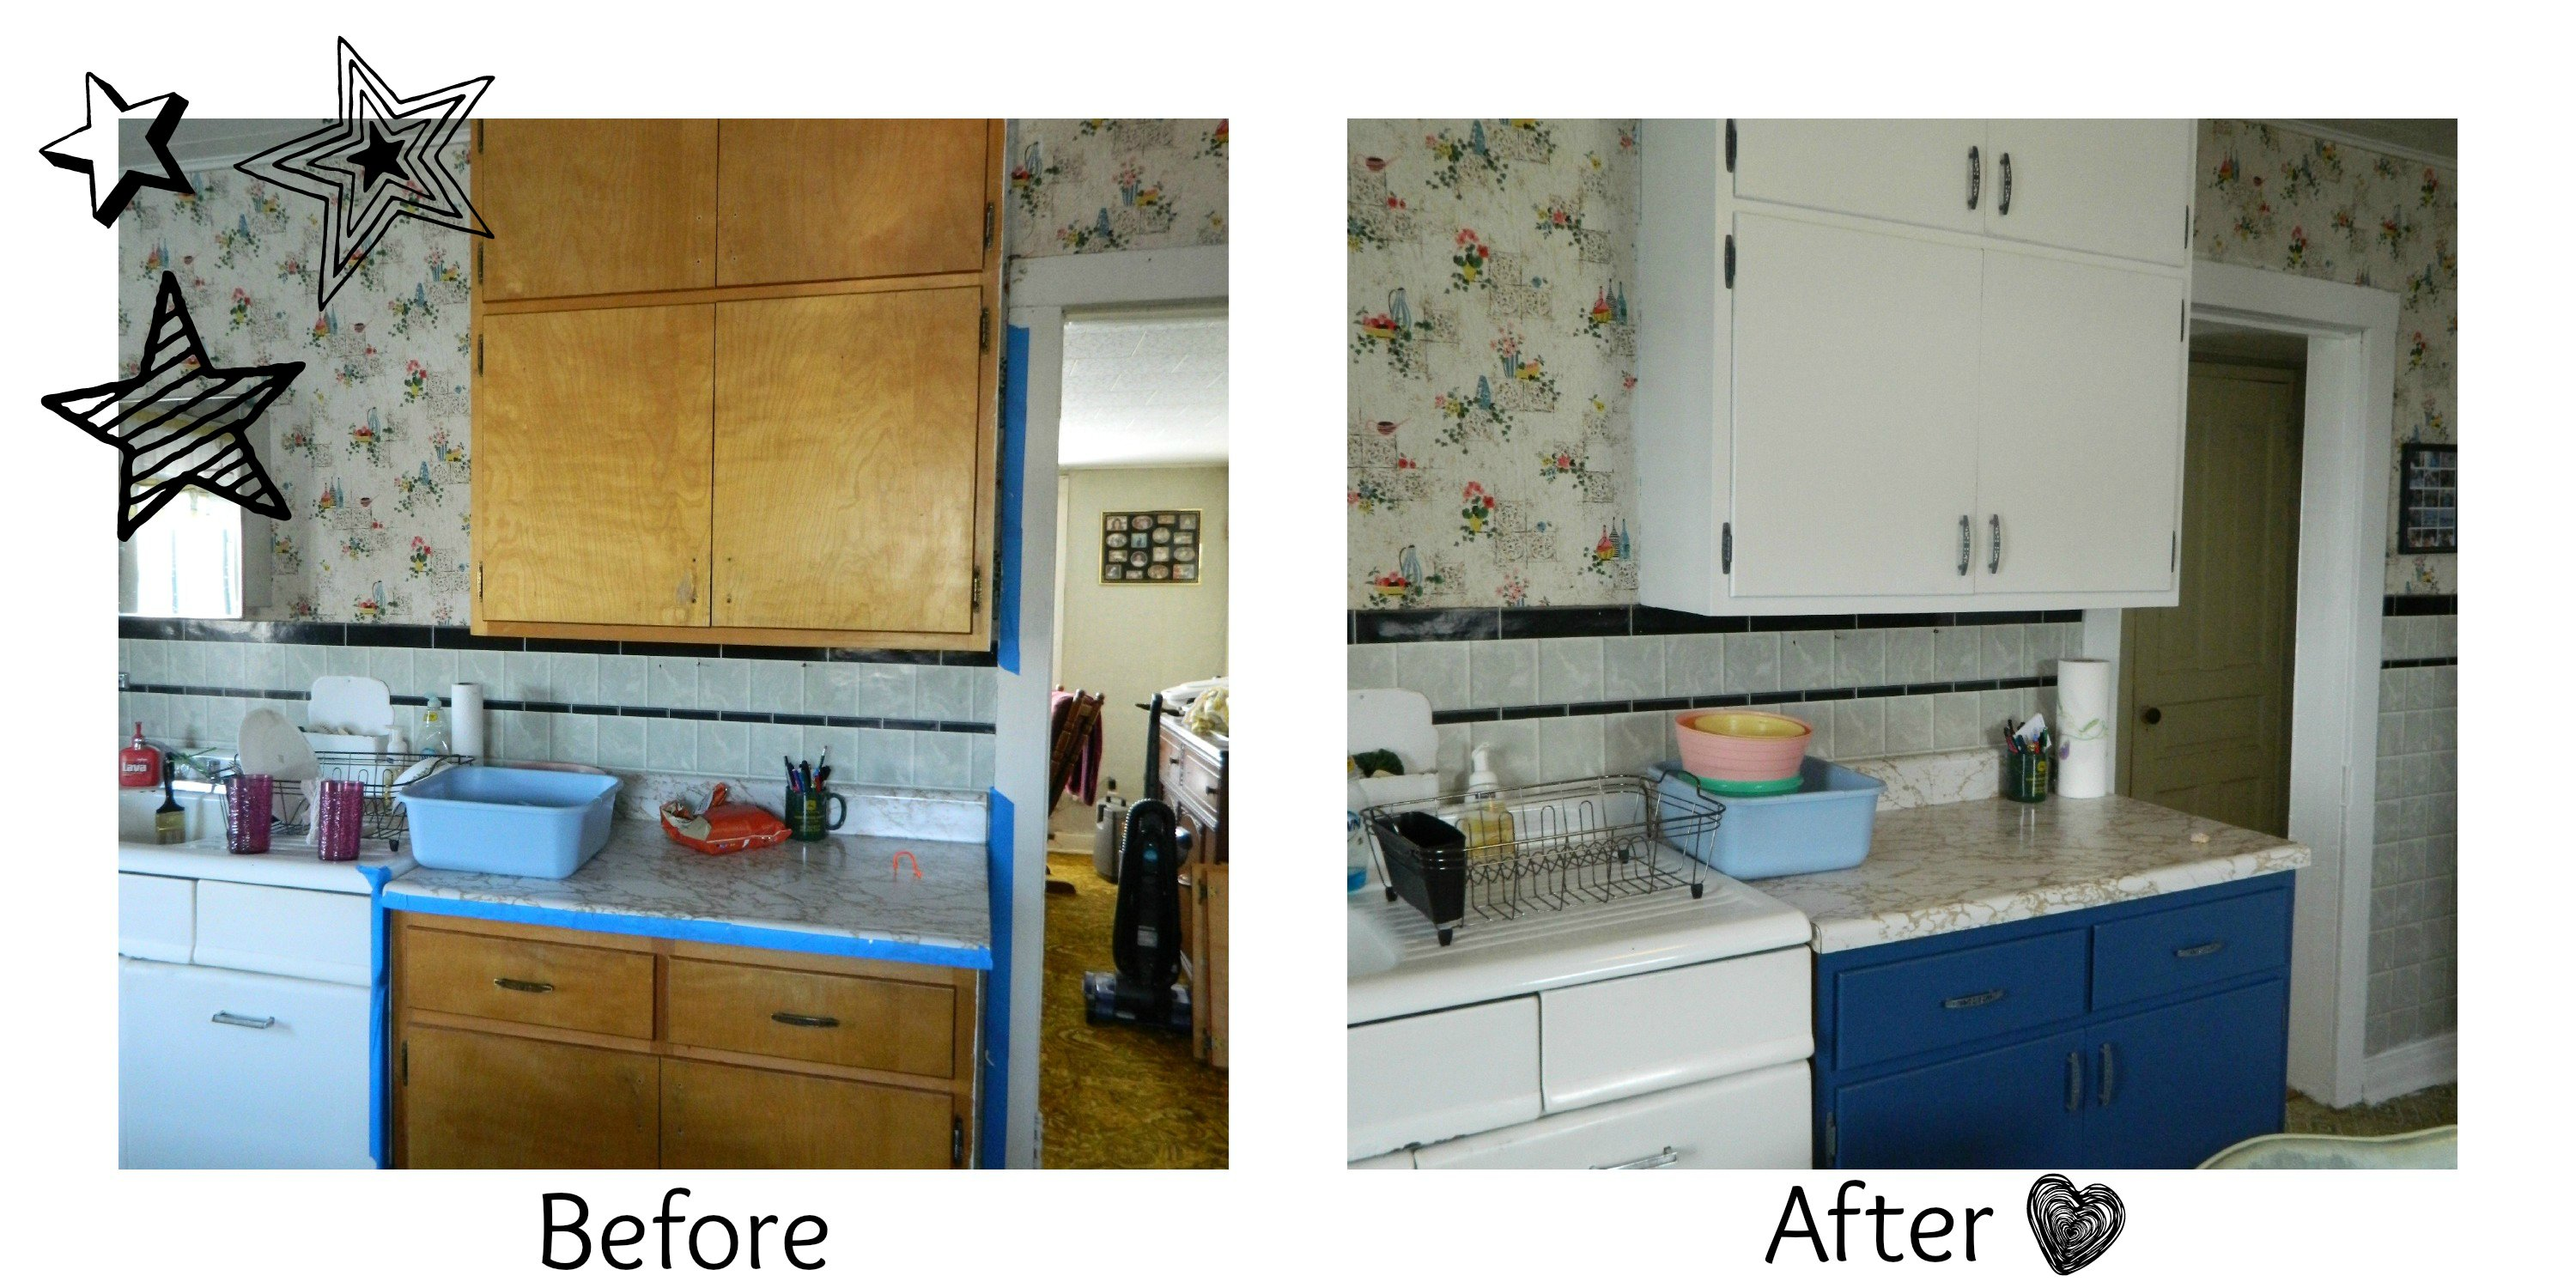 DIY: 10 Steps to Painted Kitchen Cabinets